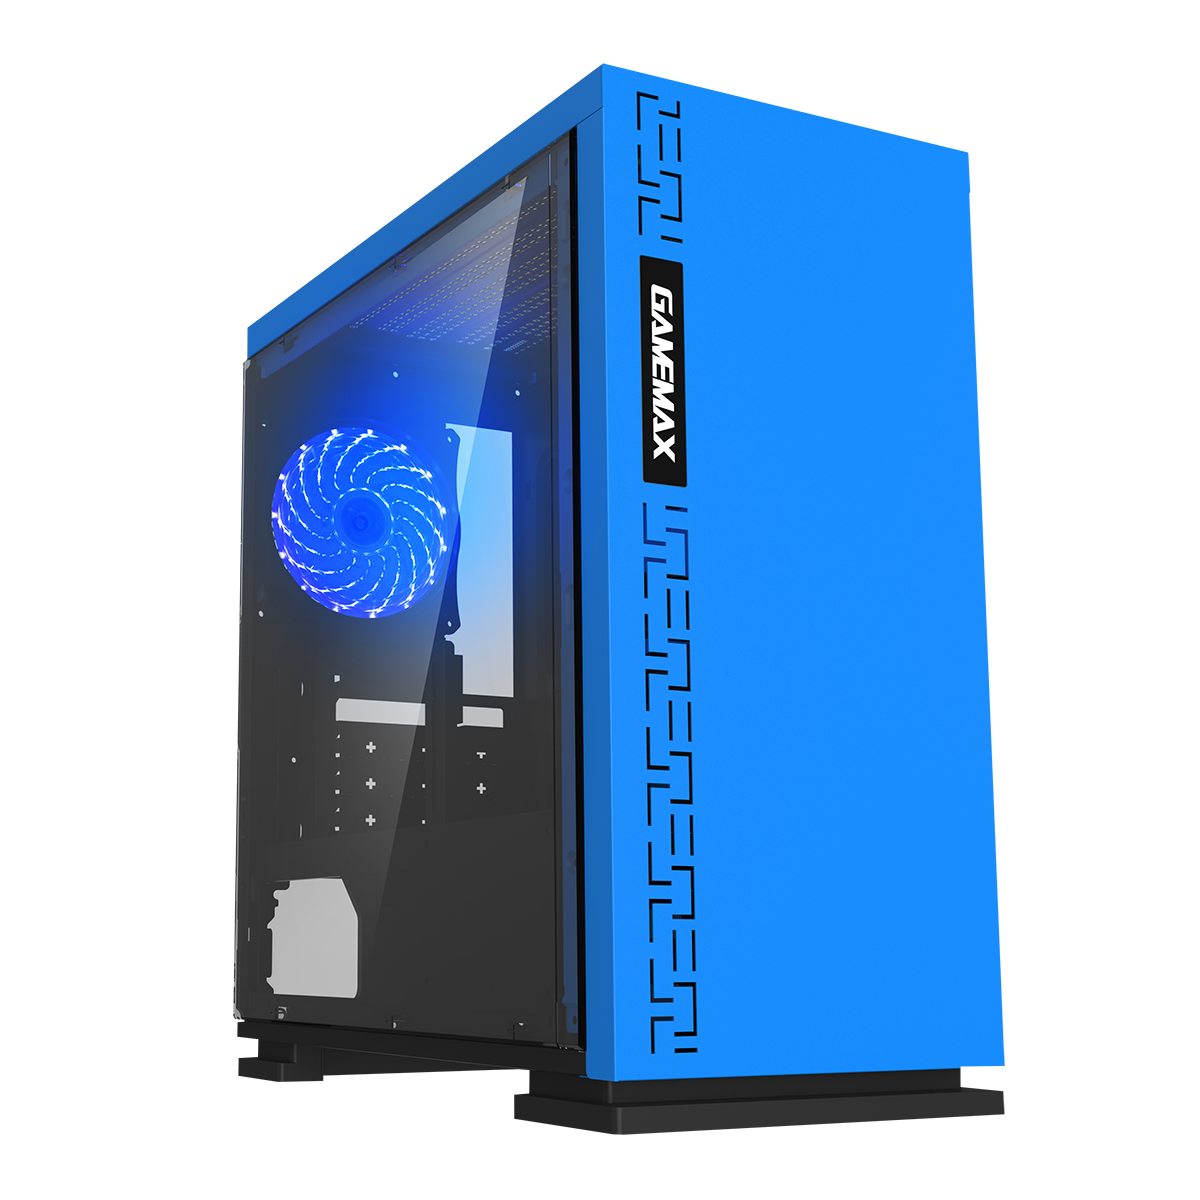 Core i5 7500 Kaby Lake 7th Gen PC with 16GB DDR4 1TB & Windows 10 Pro